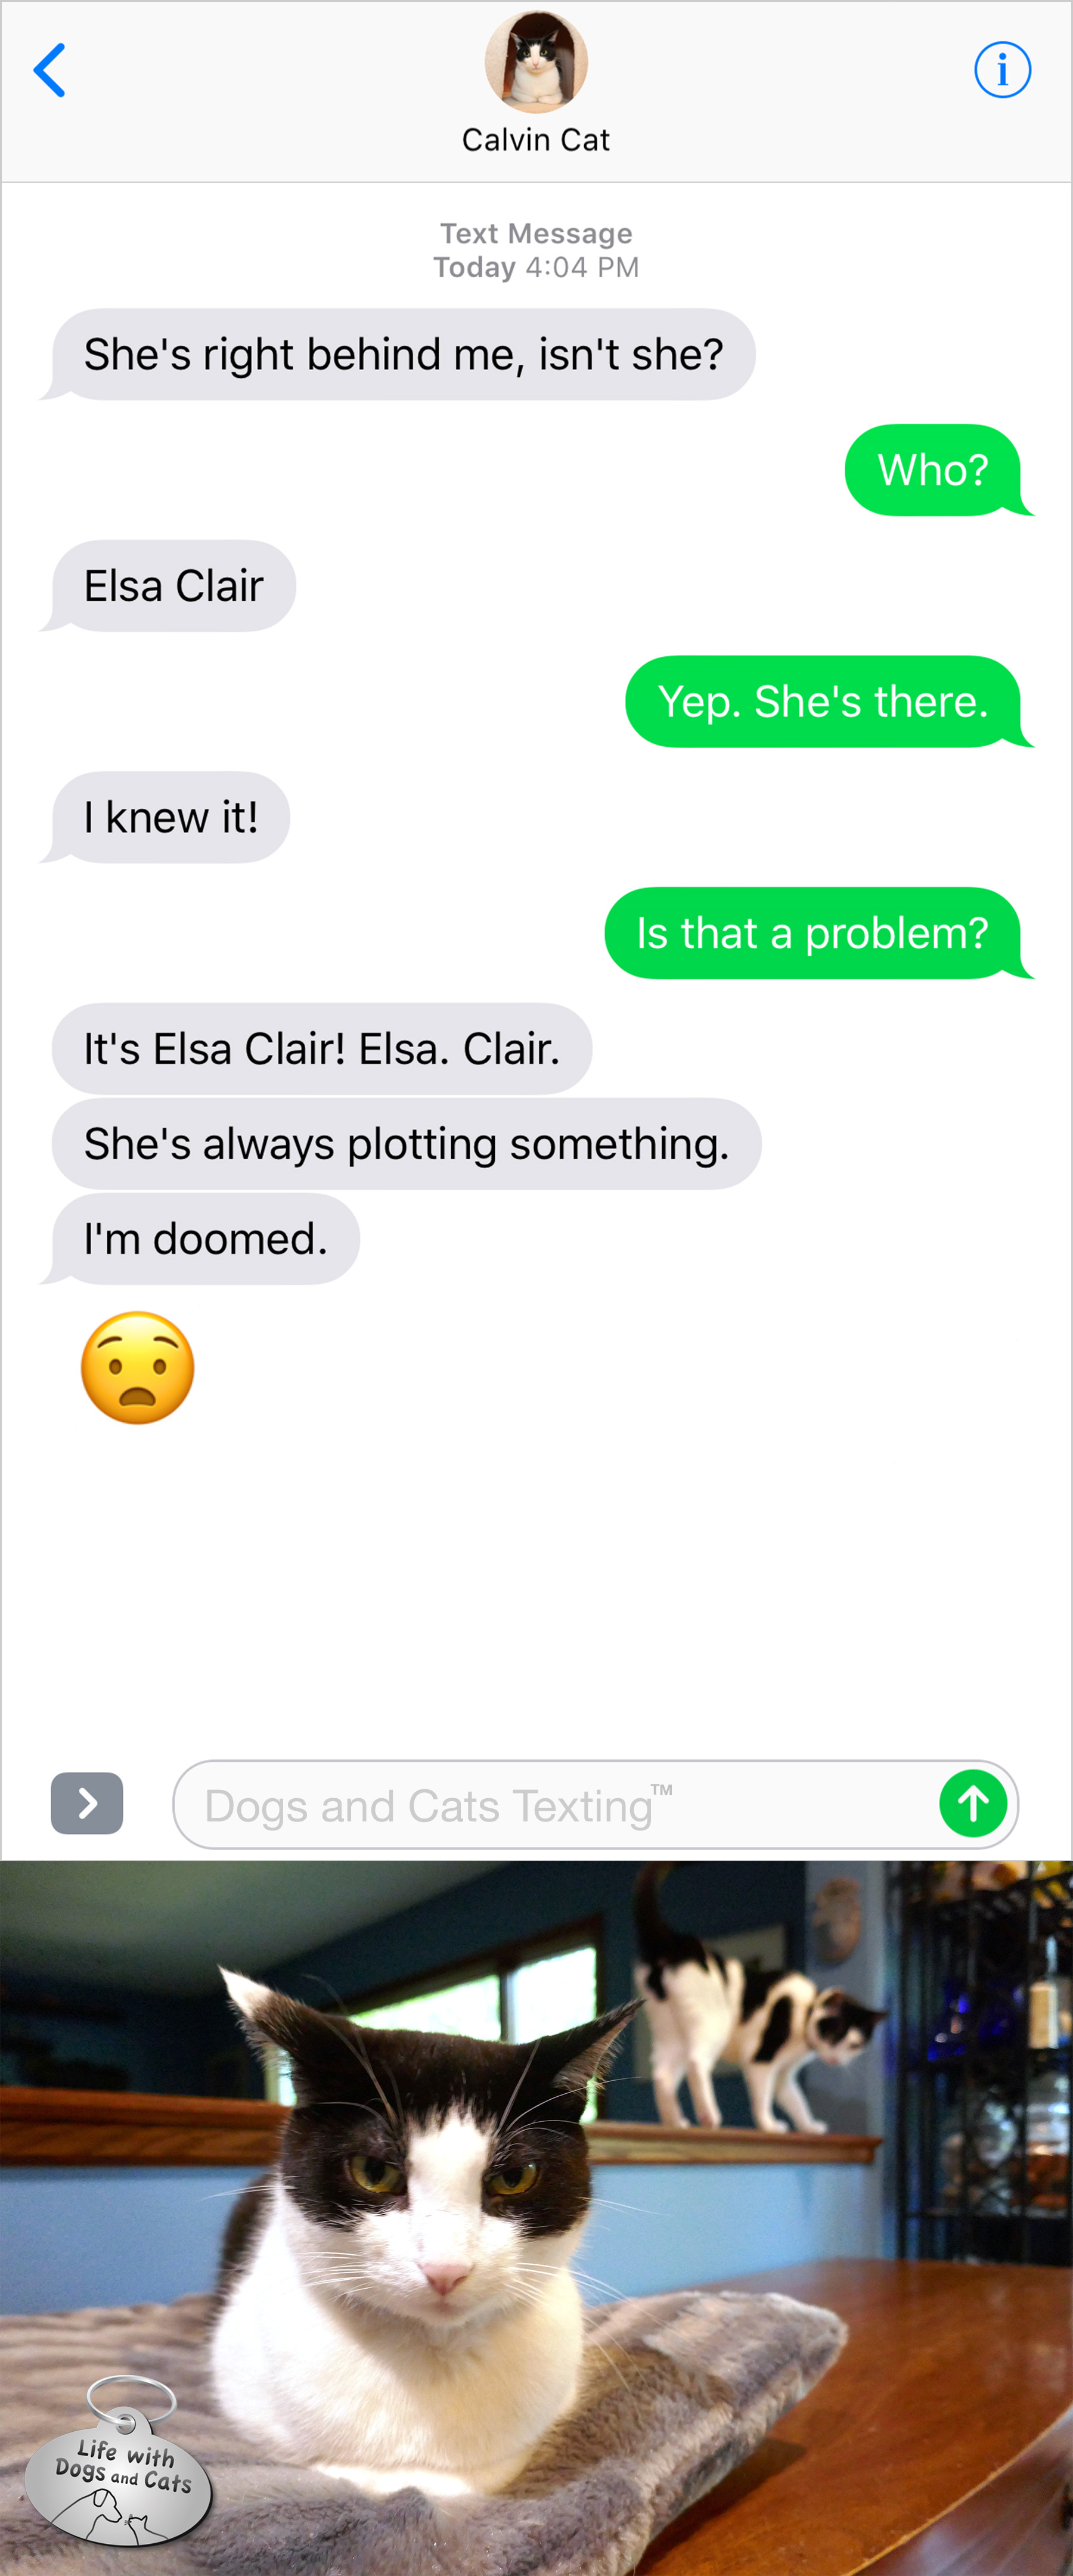 #TextFromCat She's right behind me, isn't she? Me: Yep, she's there. Is that a problem? Cat: It's Elsa Clair. Elsa. Clair. She's always plotting something. I'm doomed.